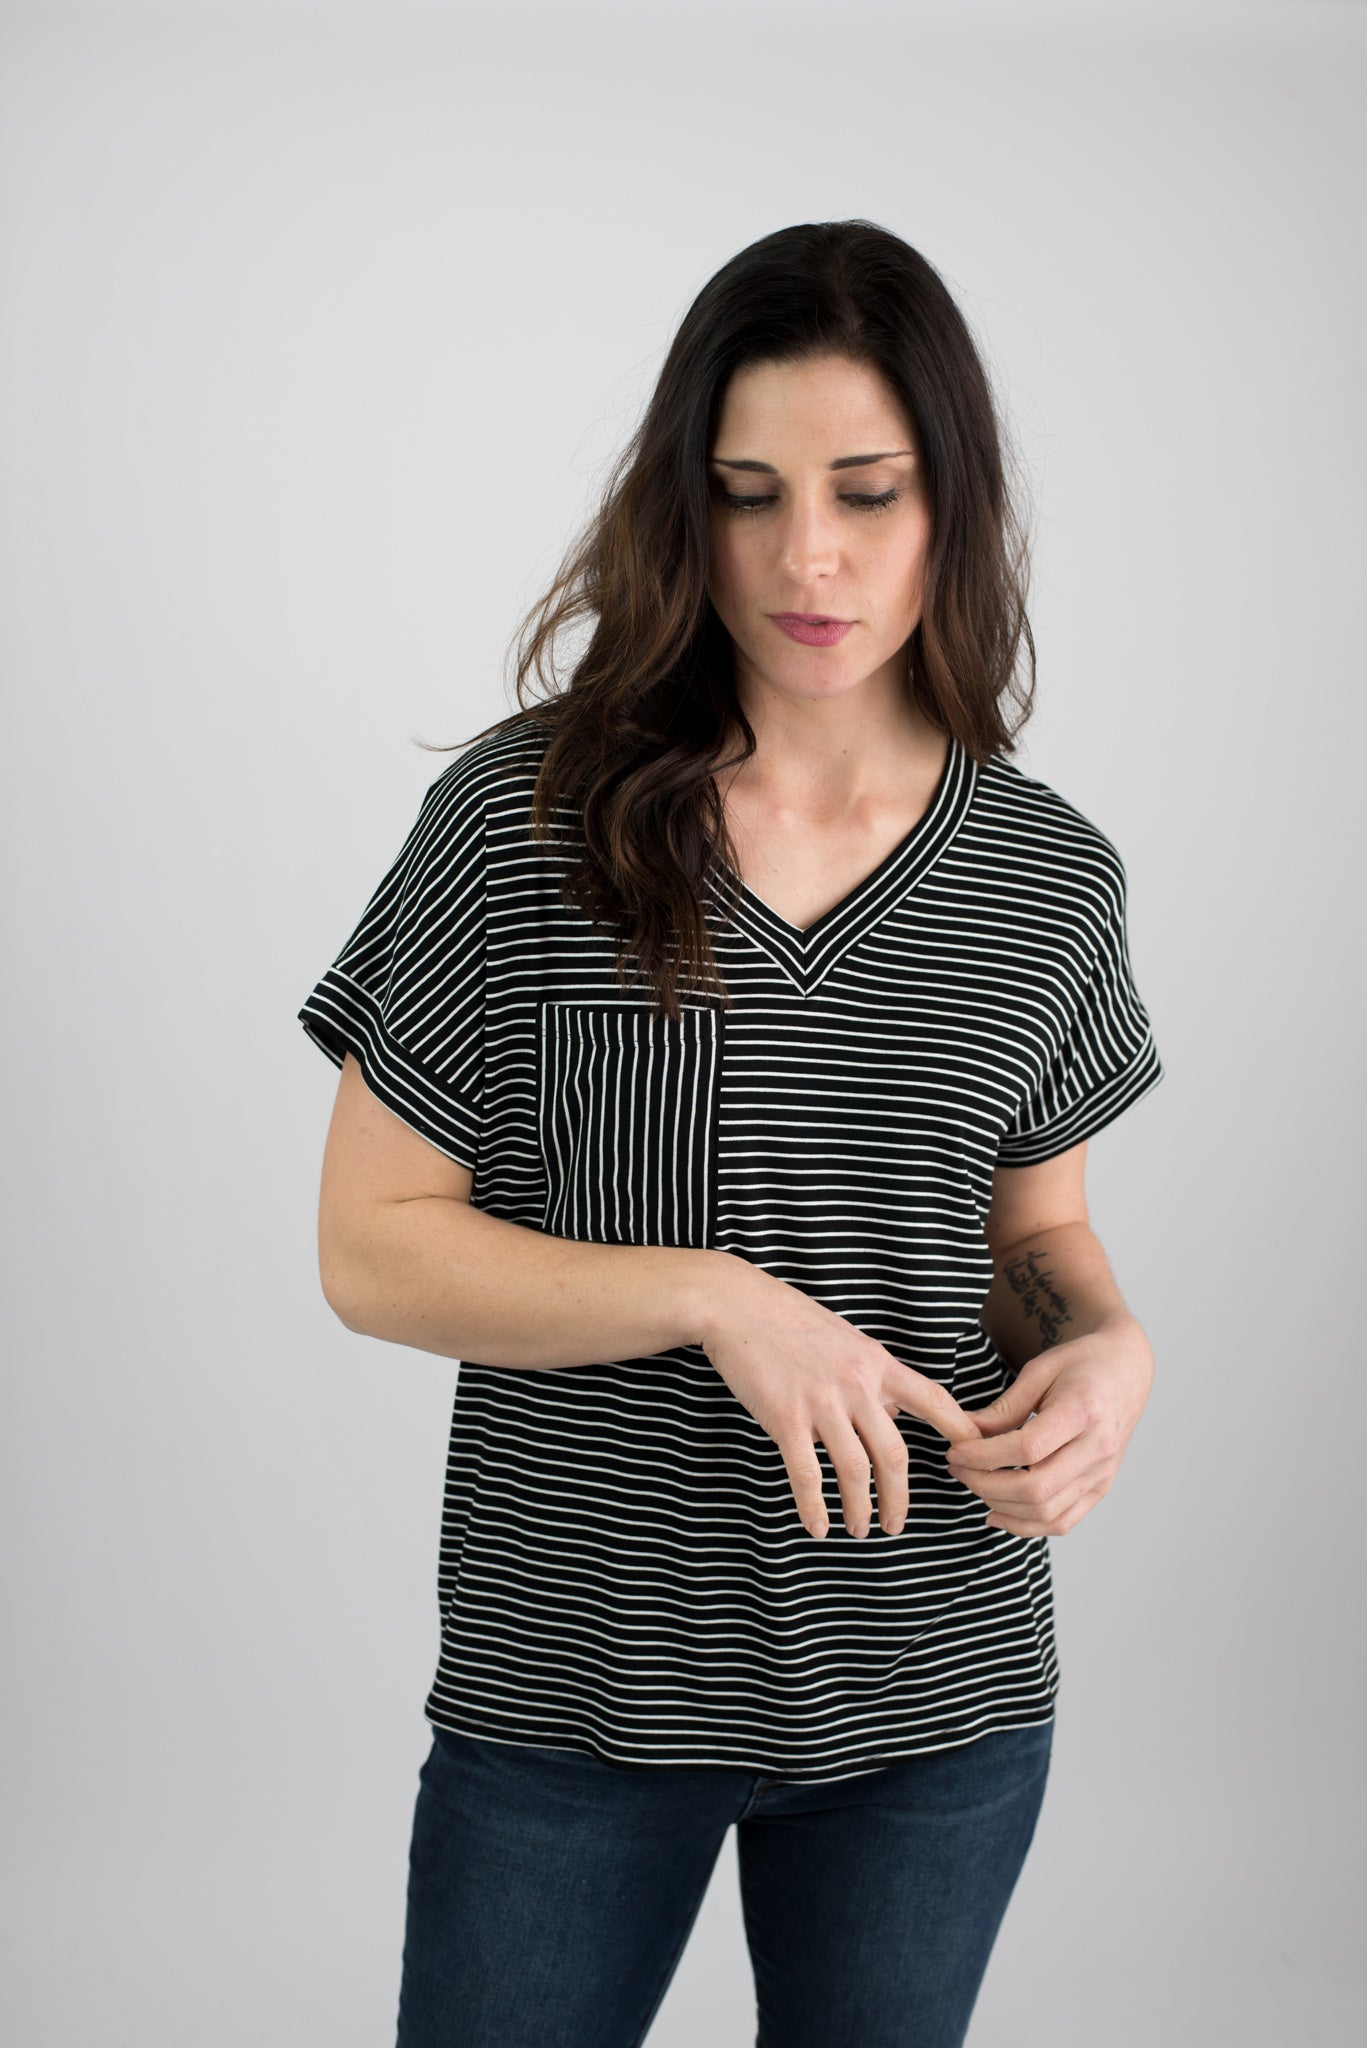 Tilted Views Pocket Tee - Black with White Stripes